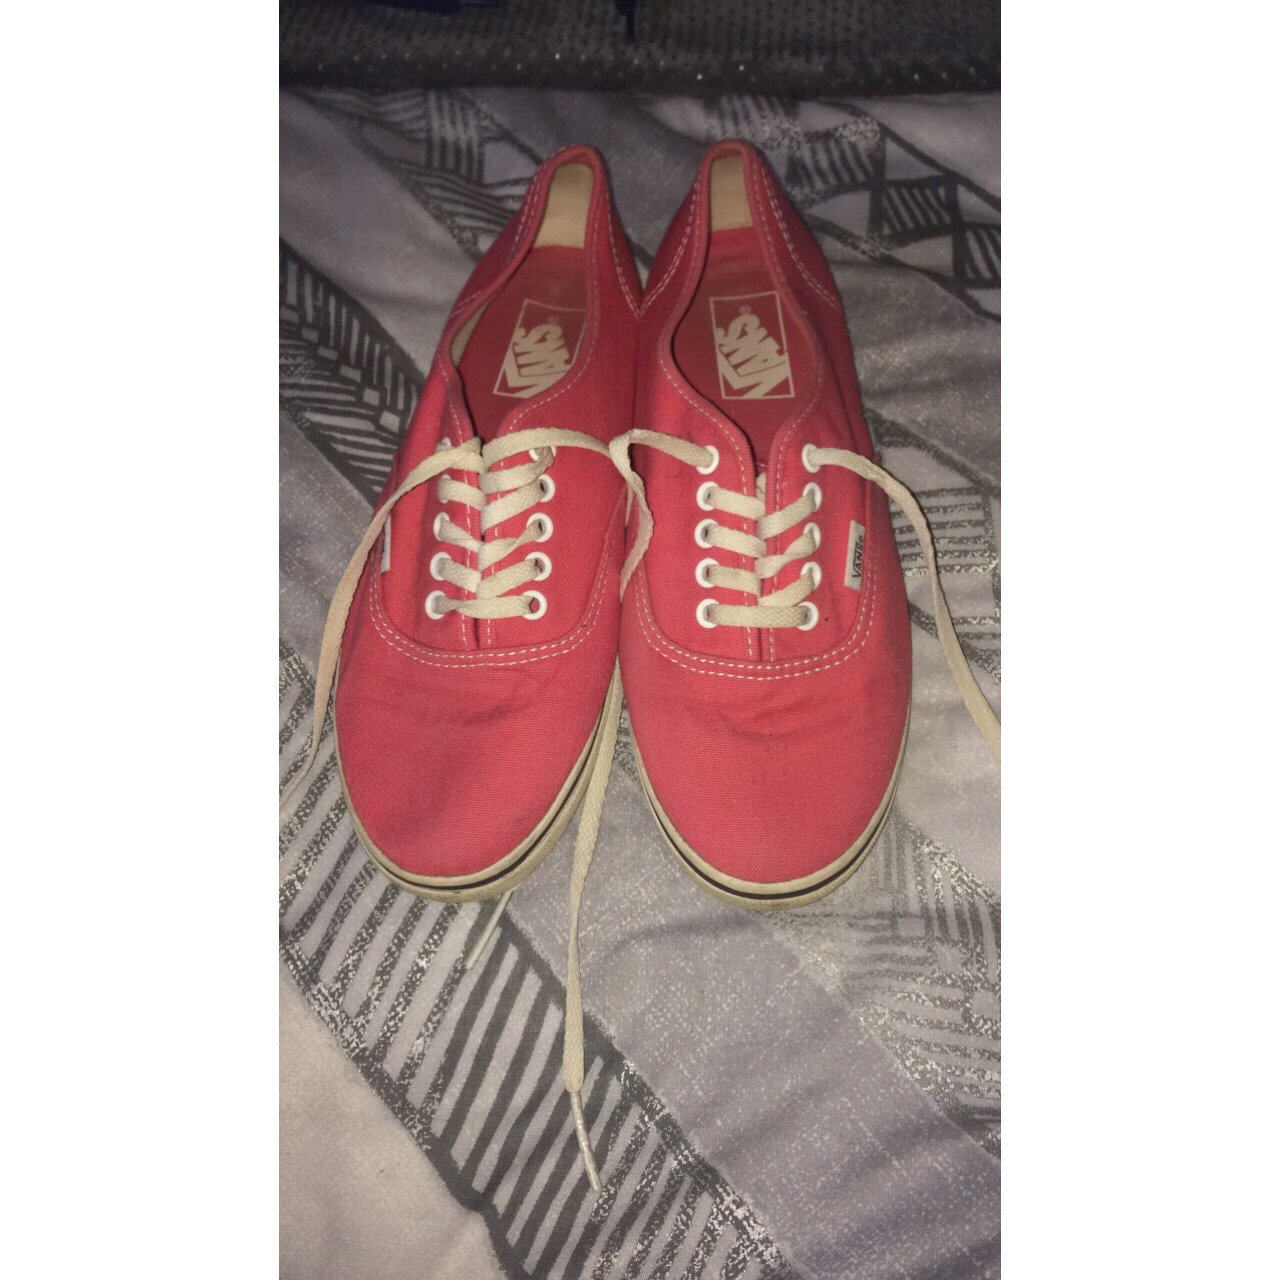 b6d3e0a45961 Brand new limited edition pink vans